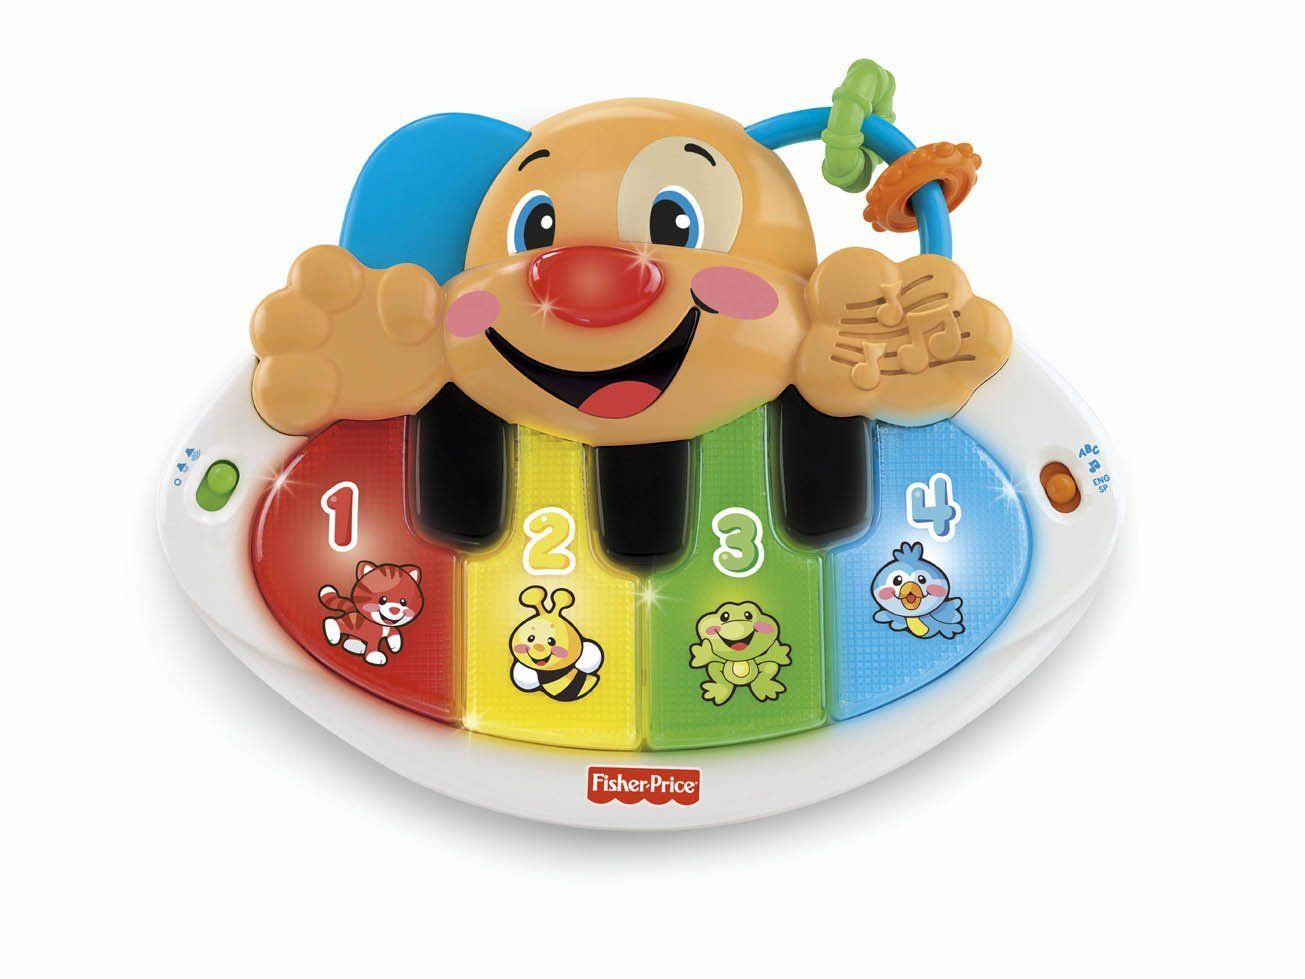 Fisherprice laugh learn puppys piano toys